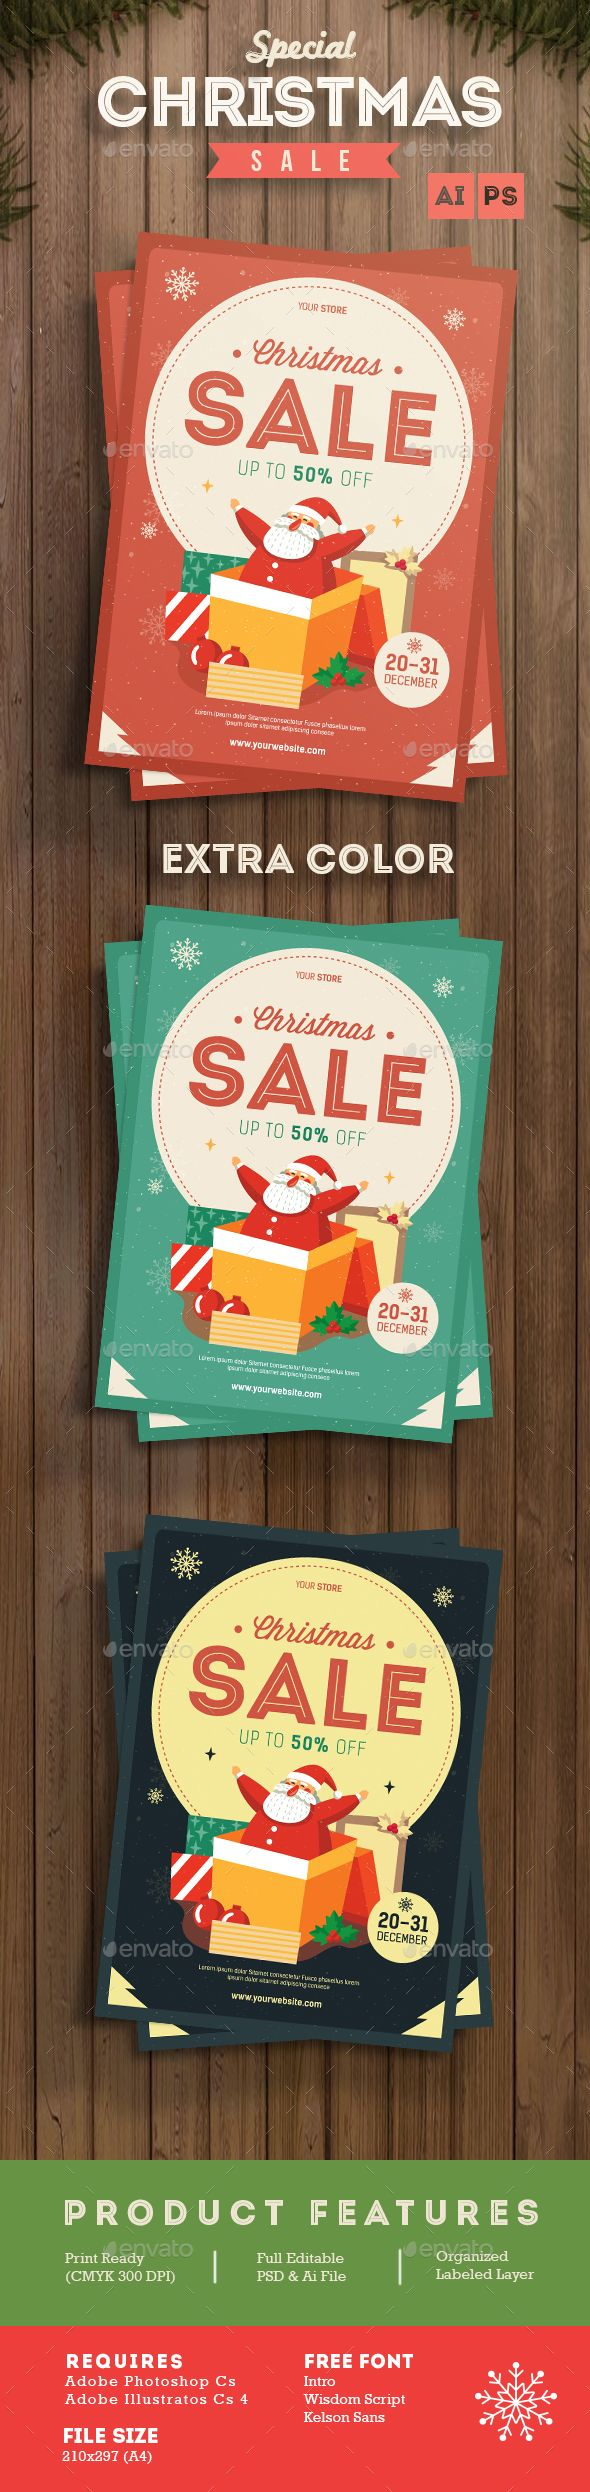 Christmas Sale Flyer Template PSD Design Xmas Download Http - Sales flyer template photoshop